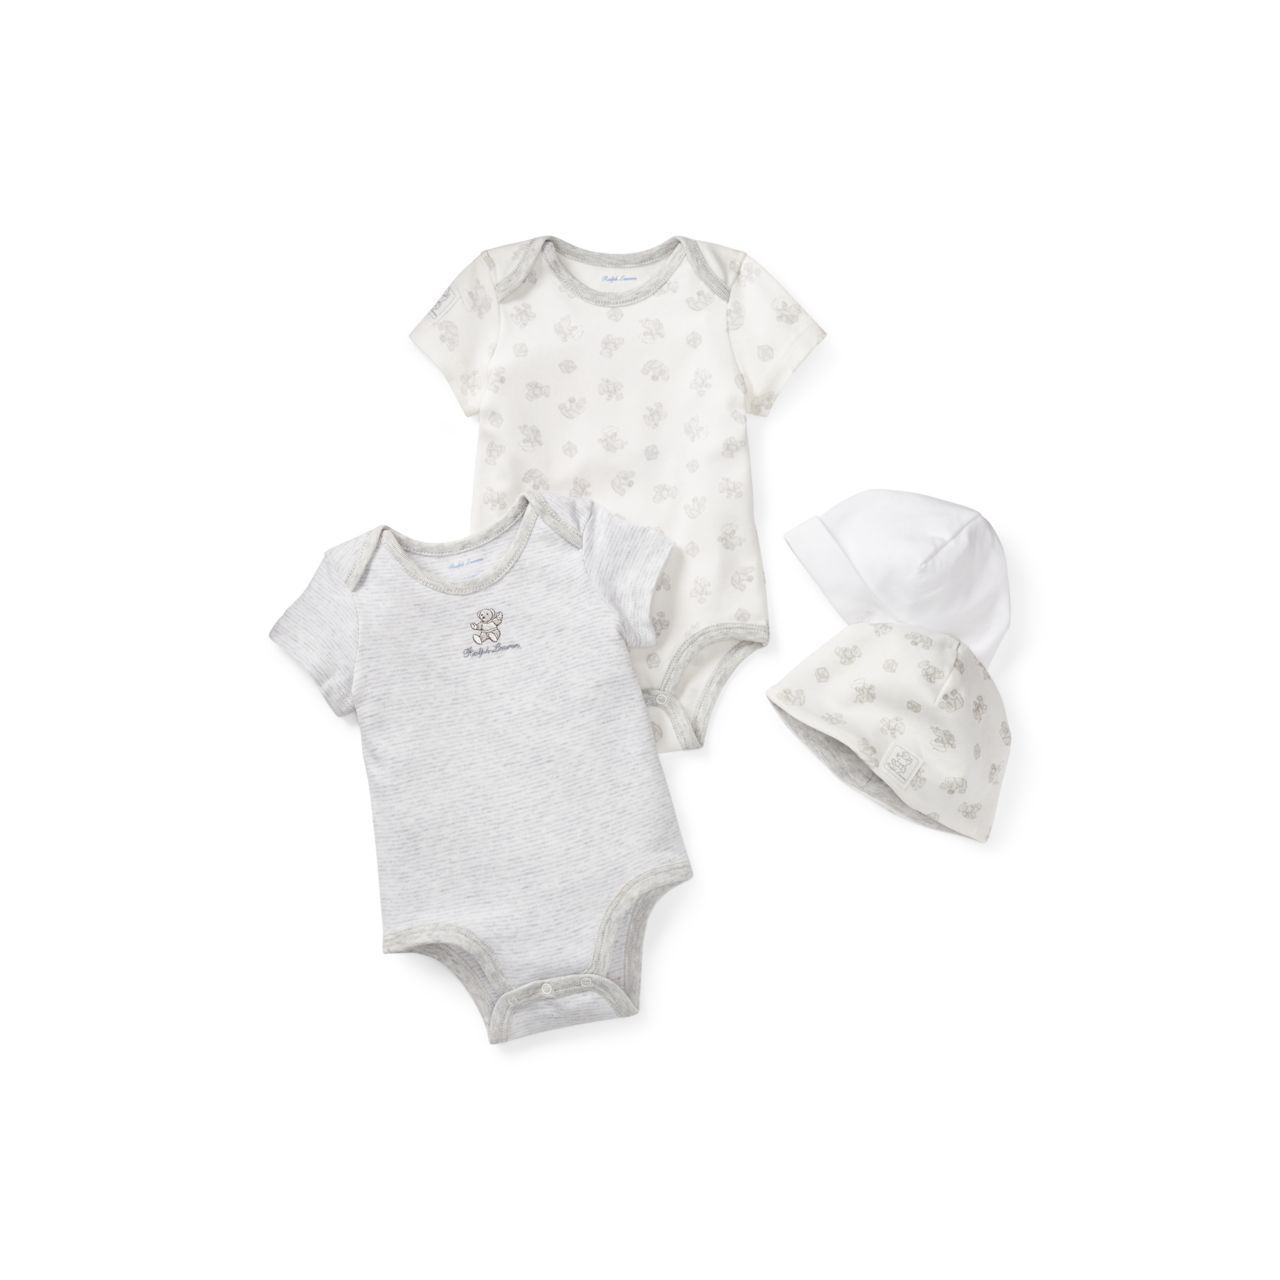 ◎送料込み◎Cotton Bodysuit 2-Piece Set